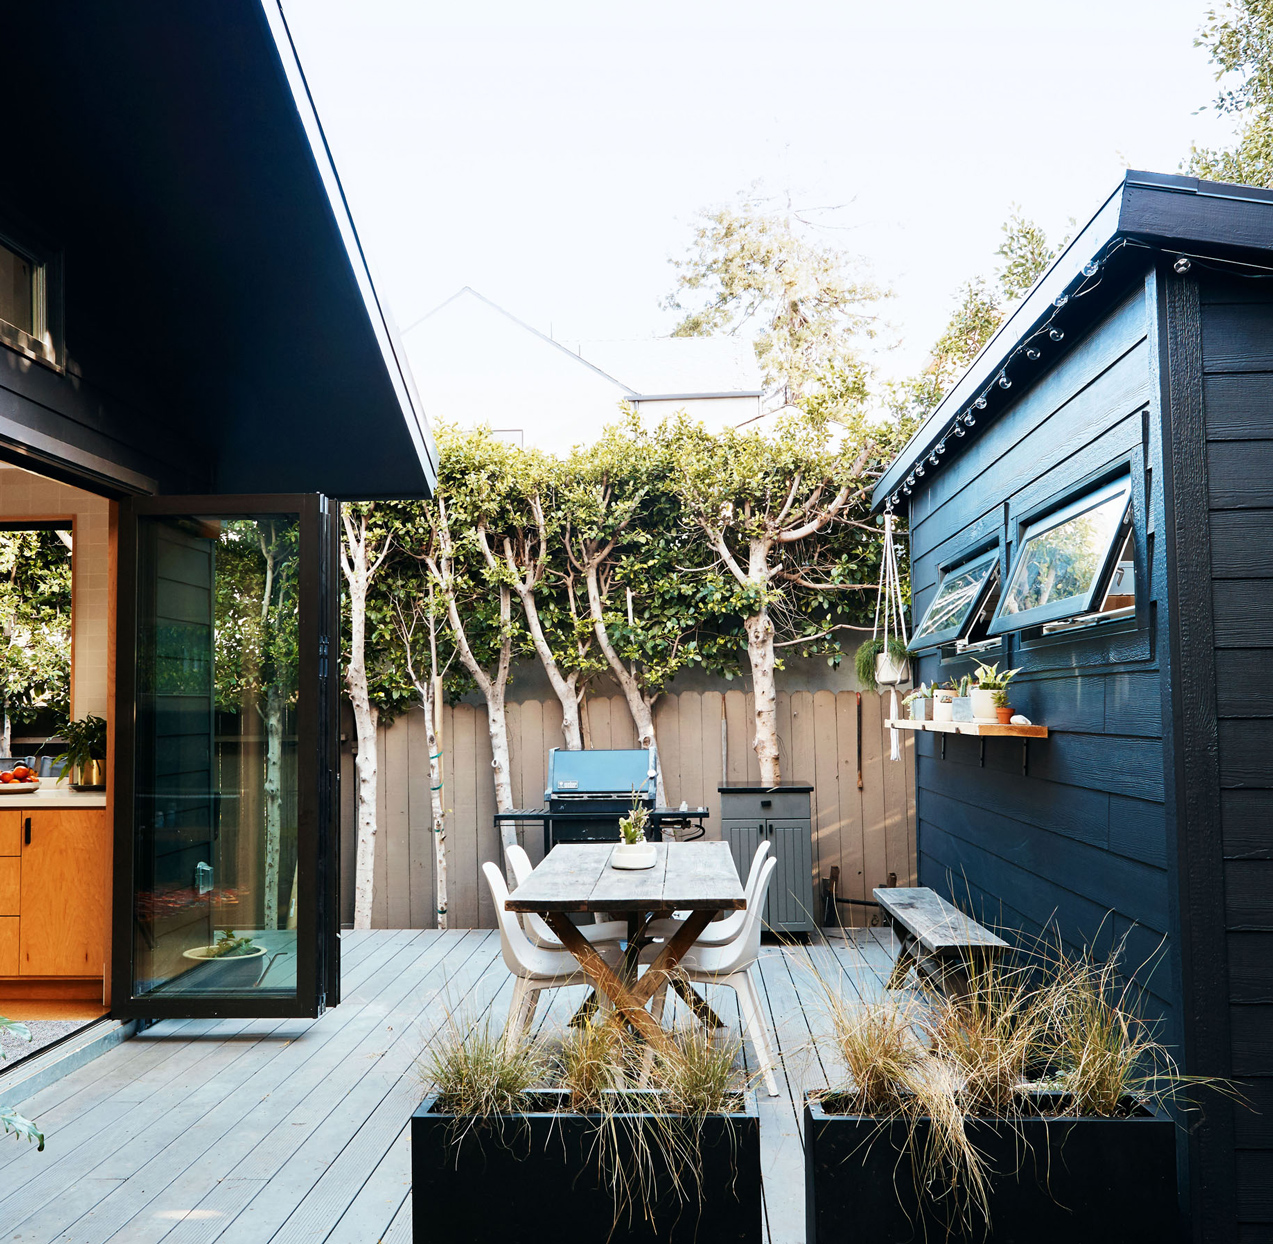 backyard deck with outdoor seating